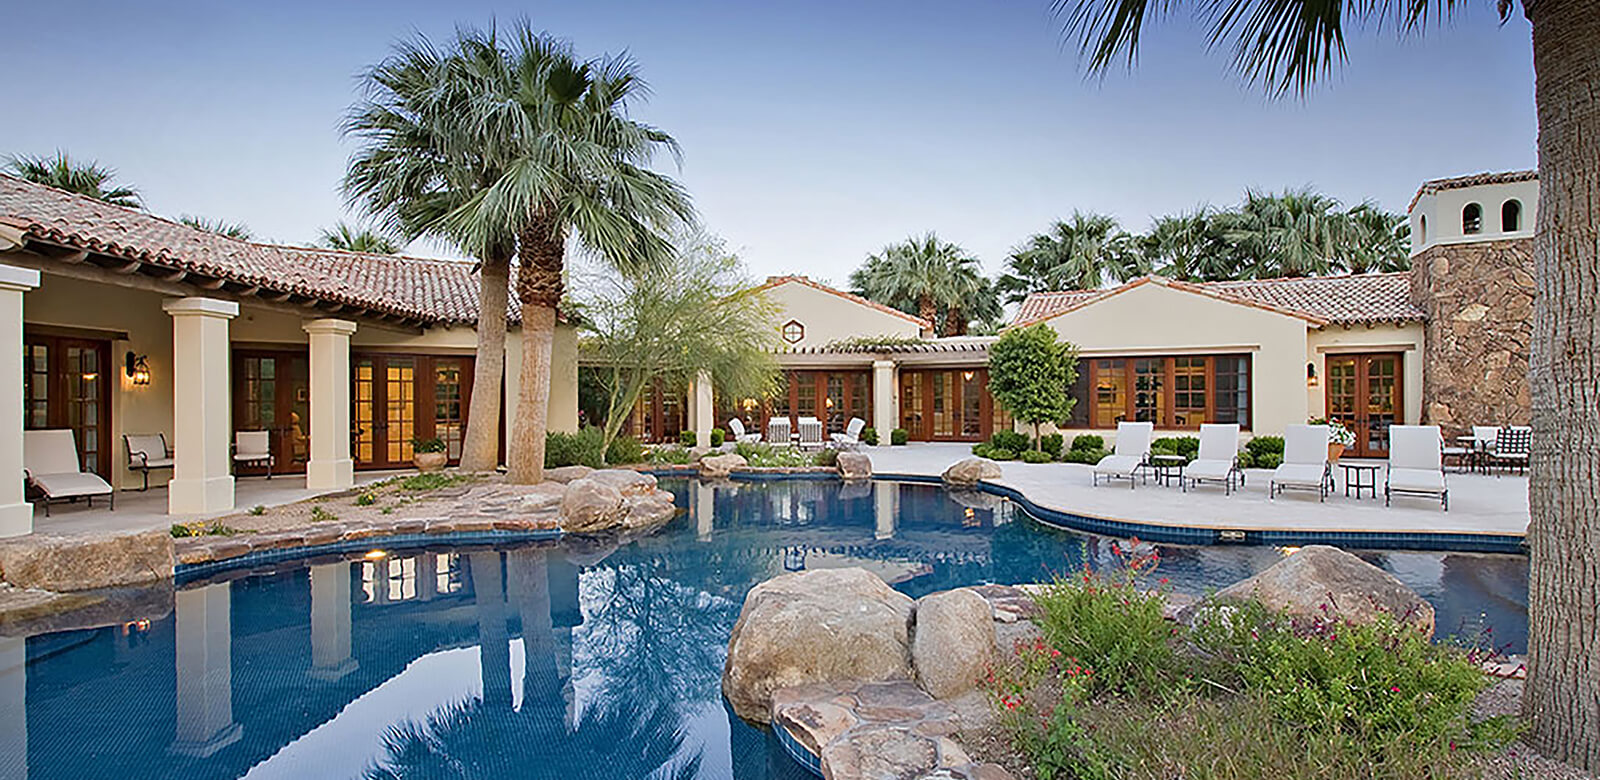 Luxurious Home with Pool Front